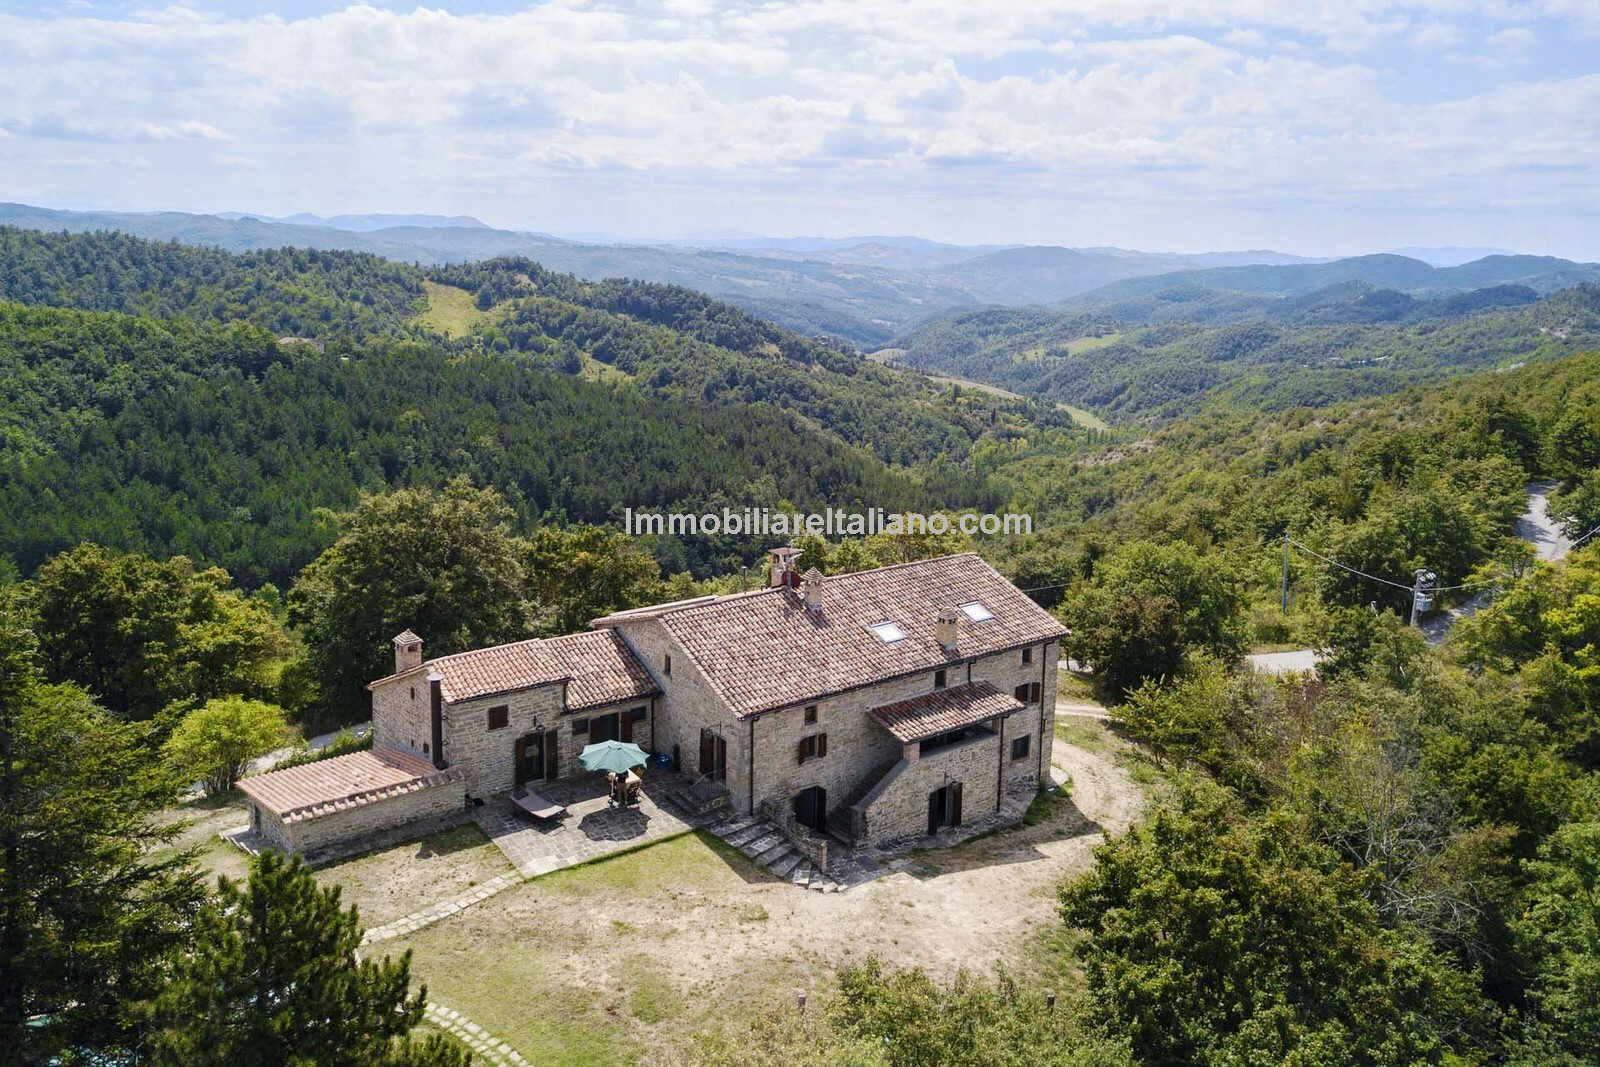 Large Italian farmhouse for sale